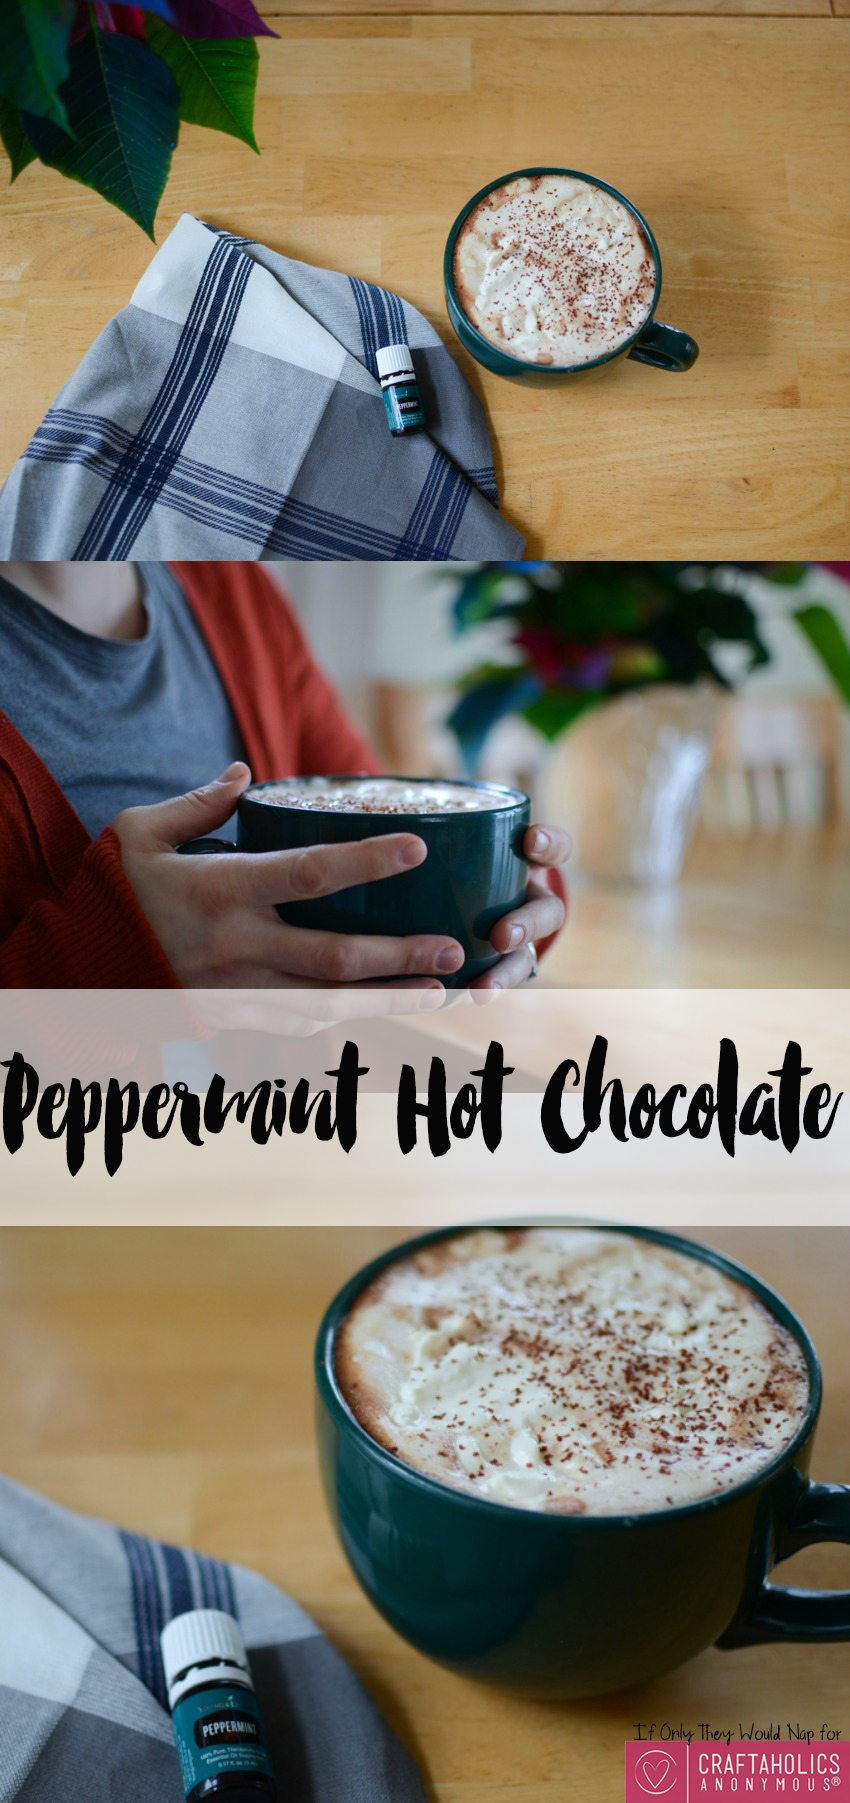 The yummiest Peppermint Hot Chocolate recipe you'll ever taste